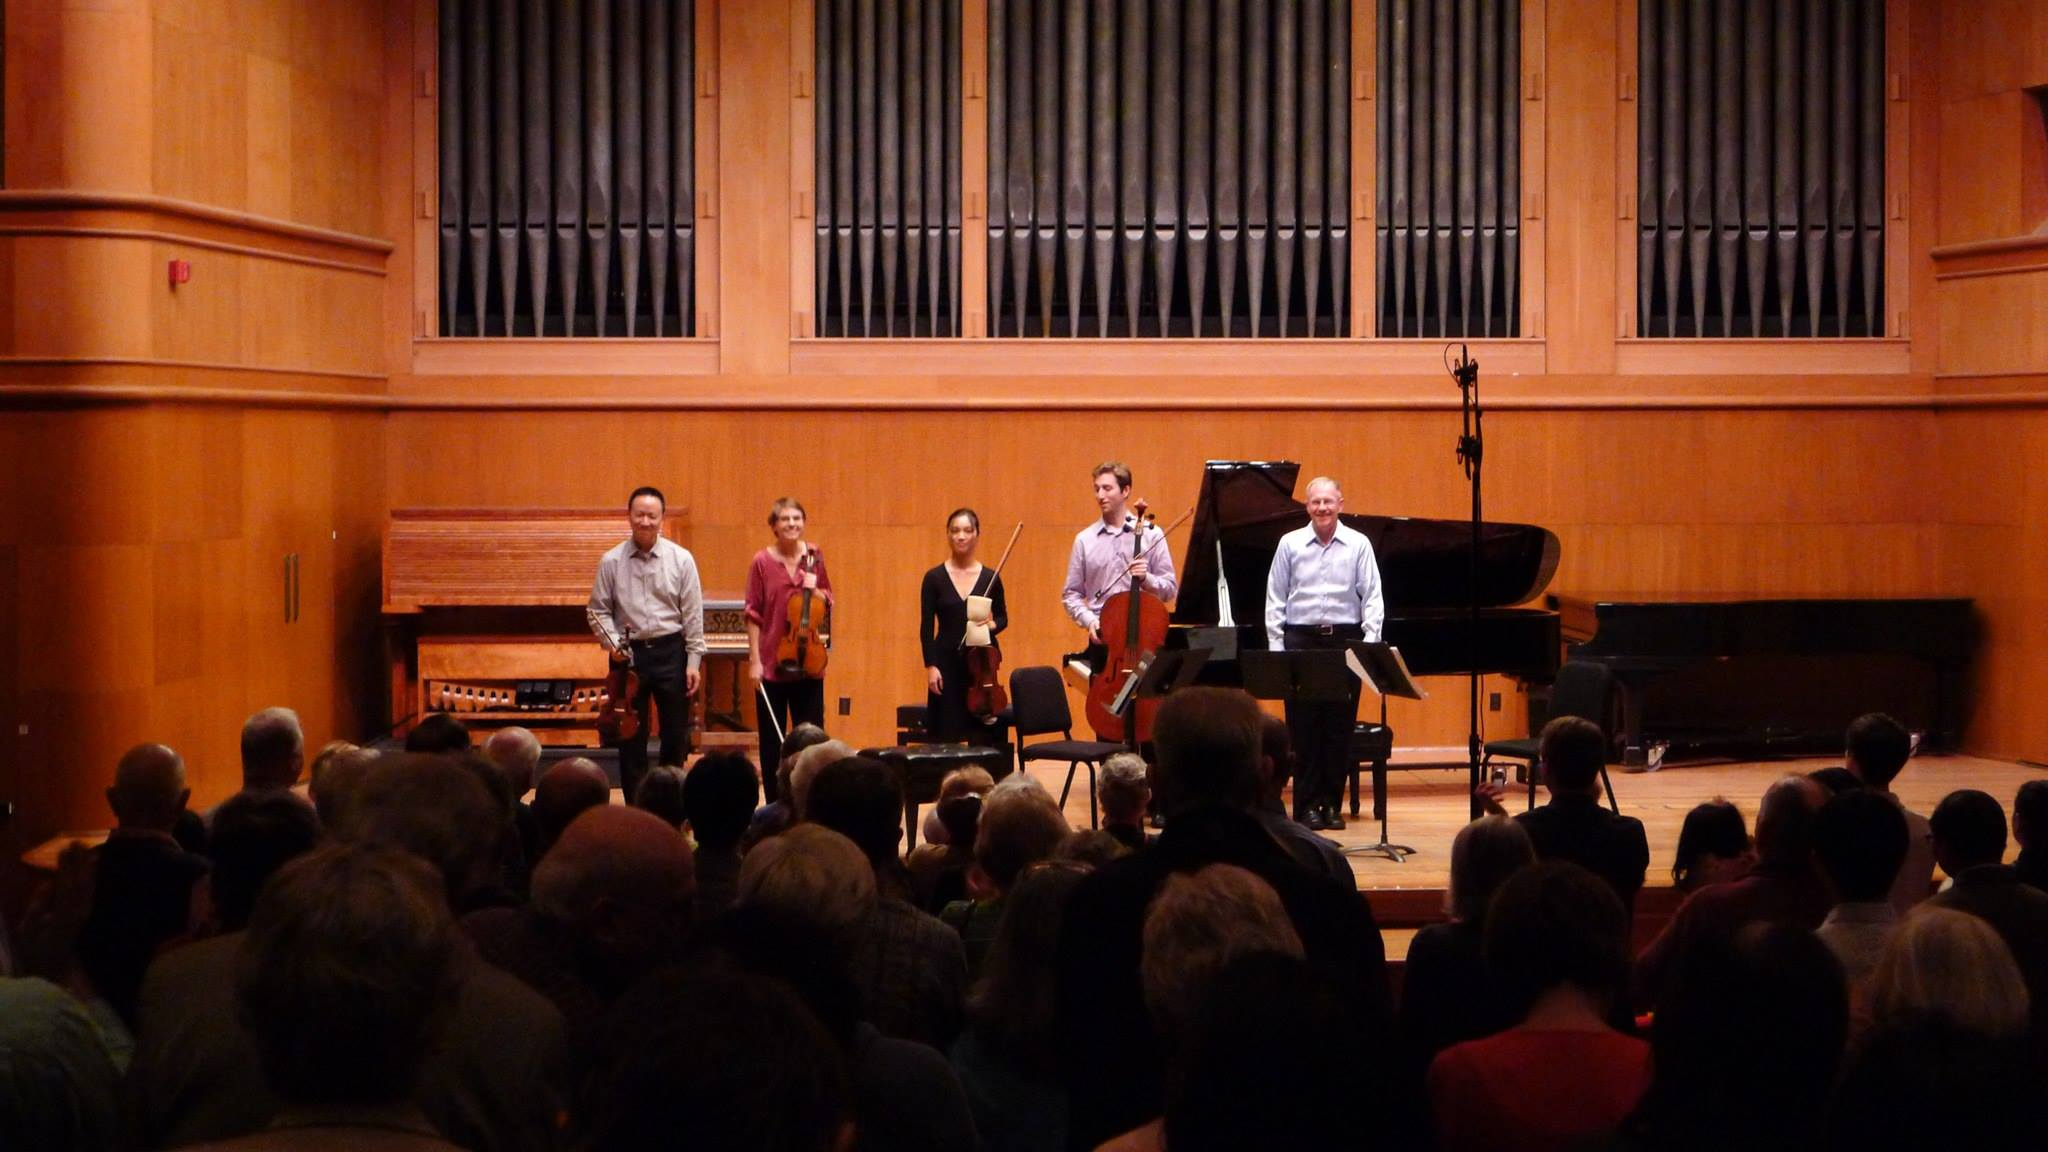 Jessen Distinguished Artists Chamber Music Concert